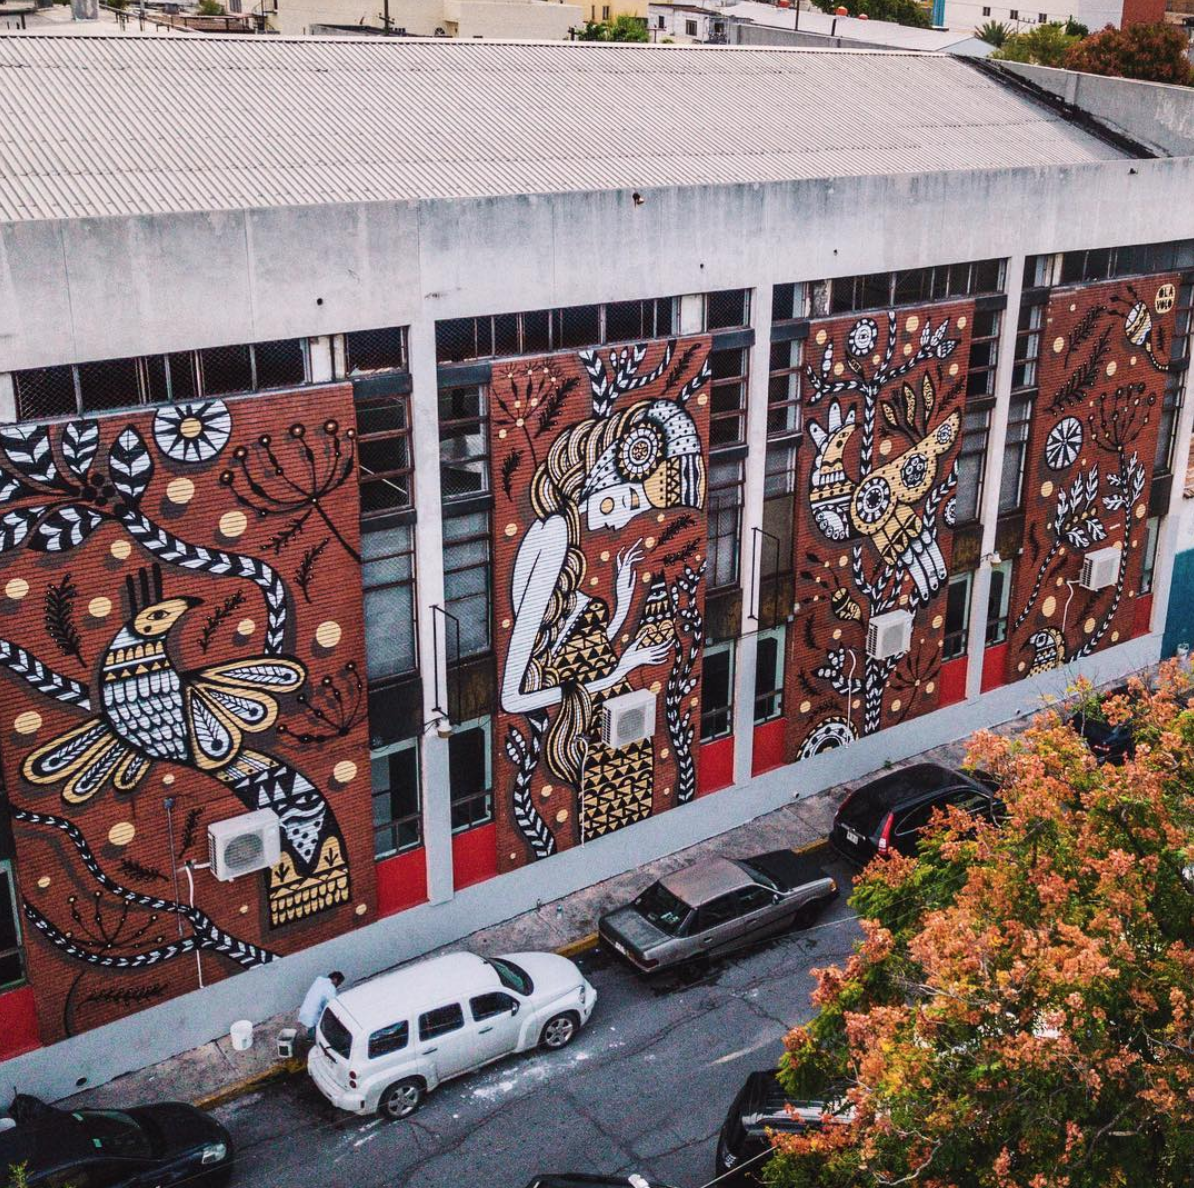 The mural at large.